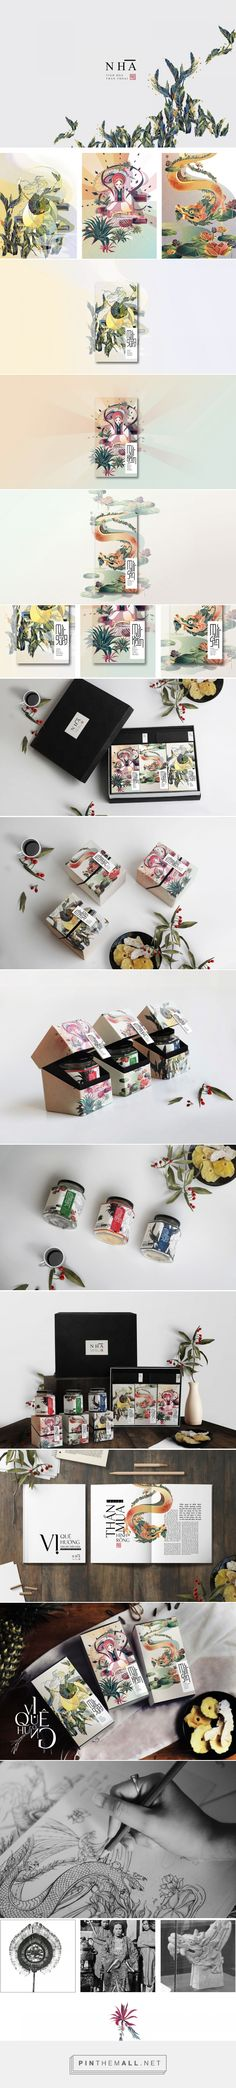 Nhà - Candied Fruit packaging design by Anh Nghiet Nguyen - https://www.packagingoftheworld.com/2018/05/nha-candied-fruit.html